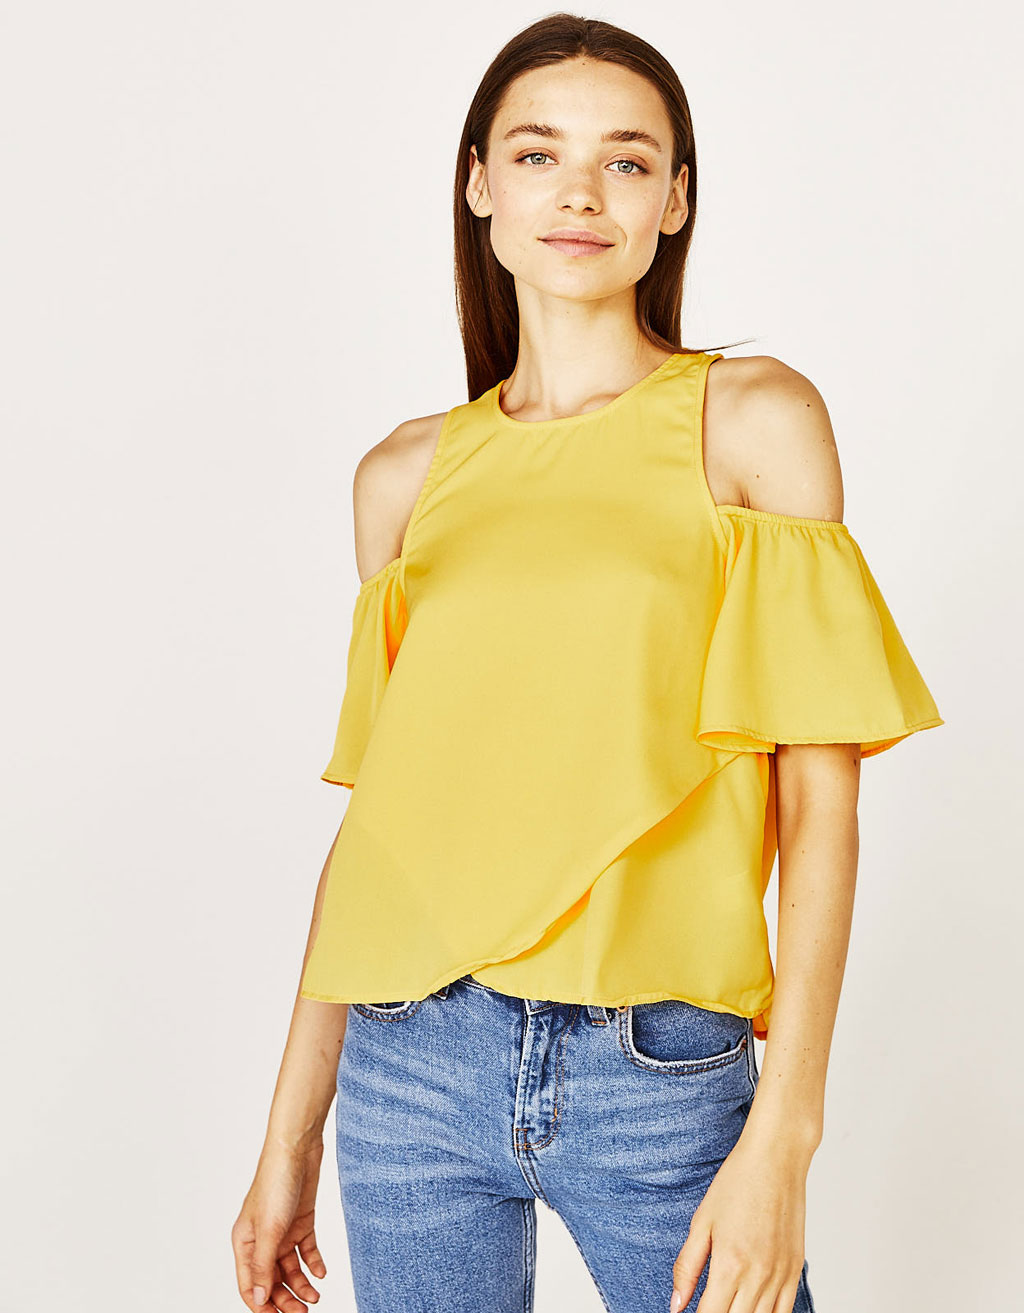 Brusa amb màniga off shoulder